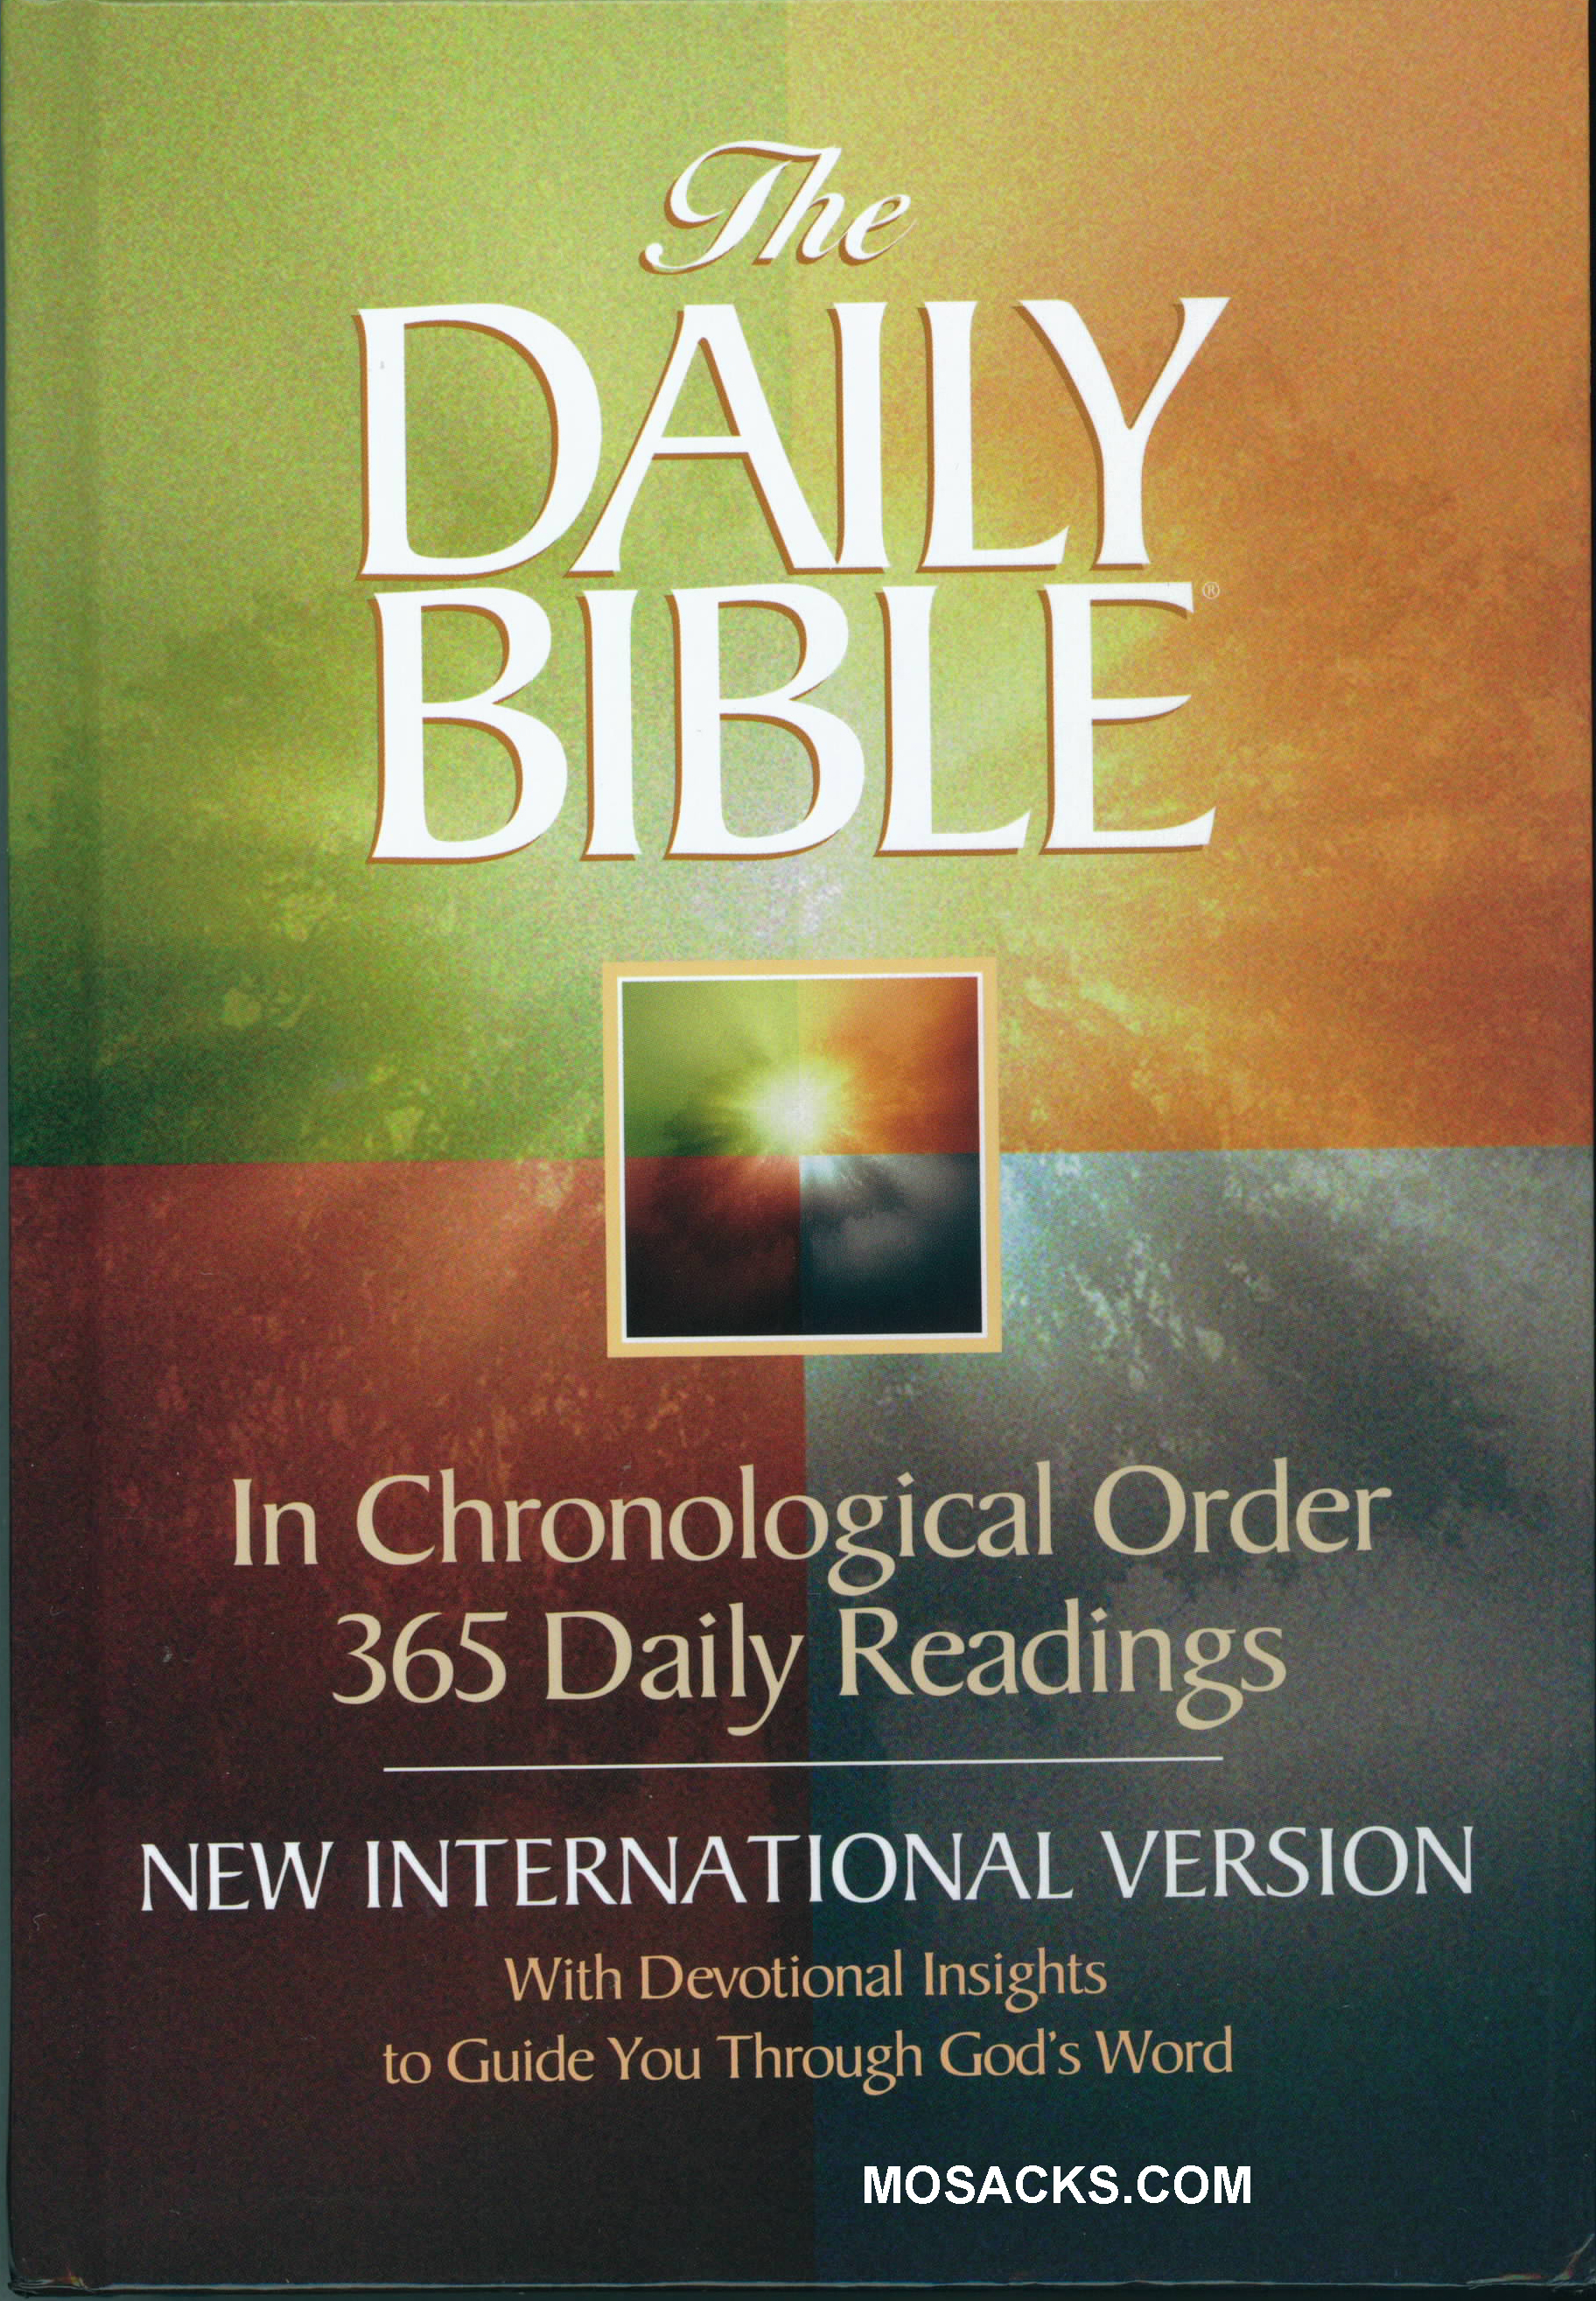 The Daily Bible with F. LaGard Smith 108-9780736901246